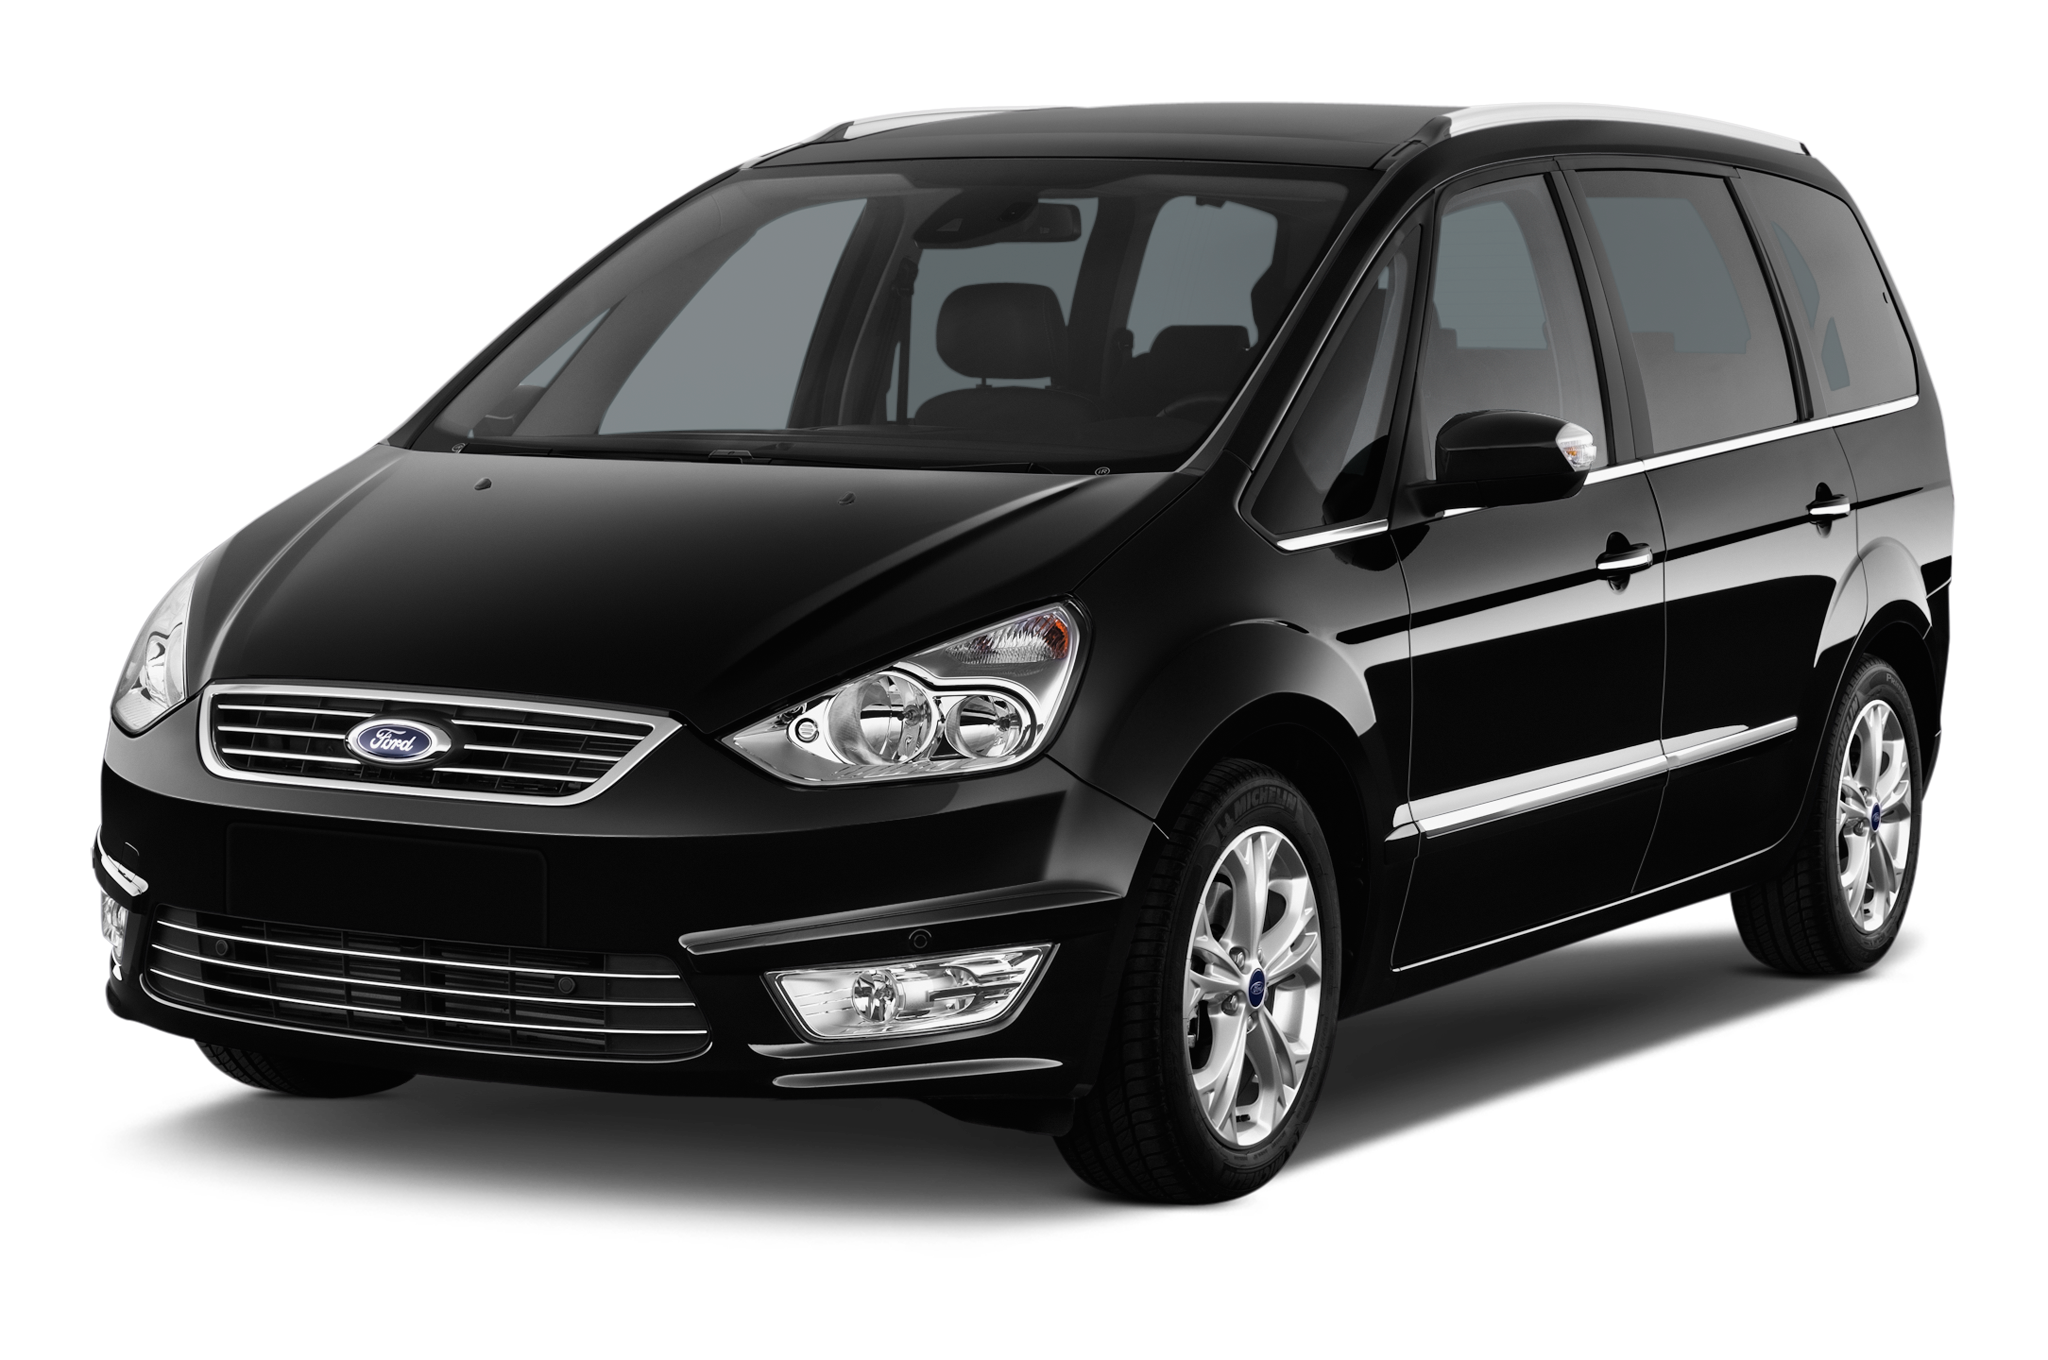 2012 ford galaxy. Black Bedroom Furniture Sets. Home Design Ideas